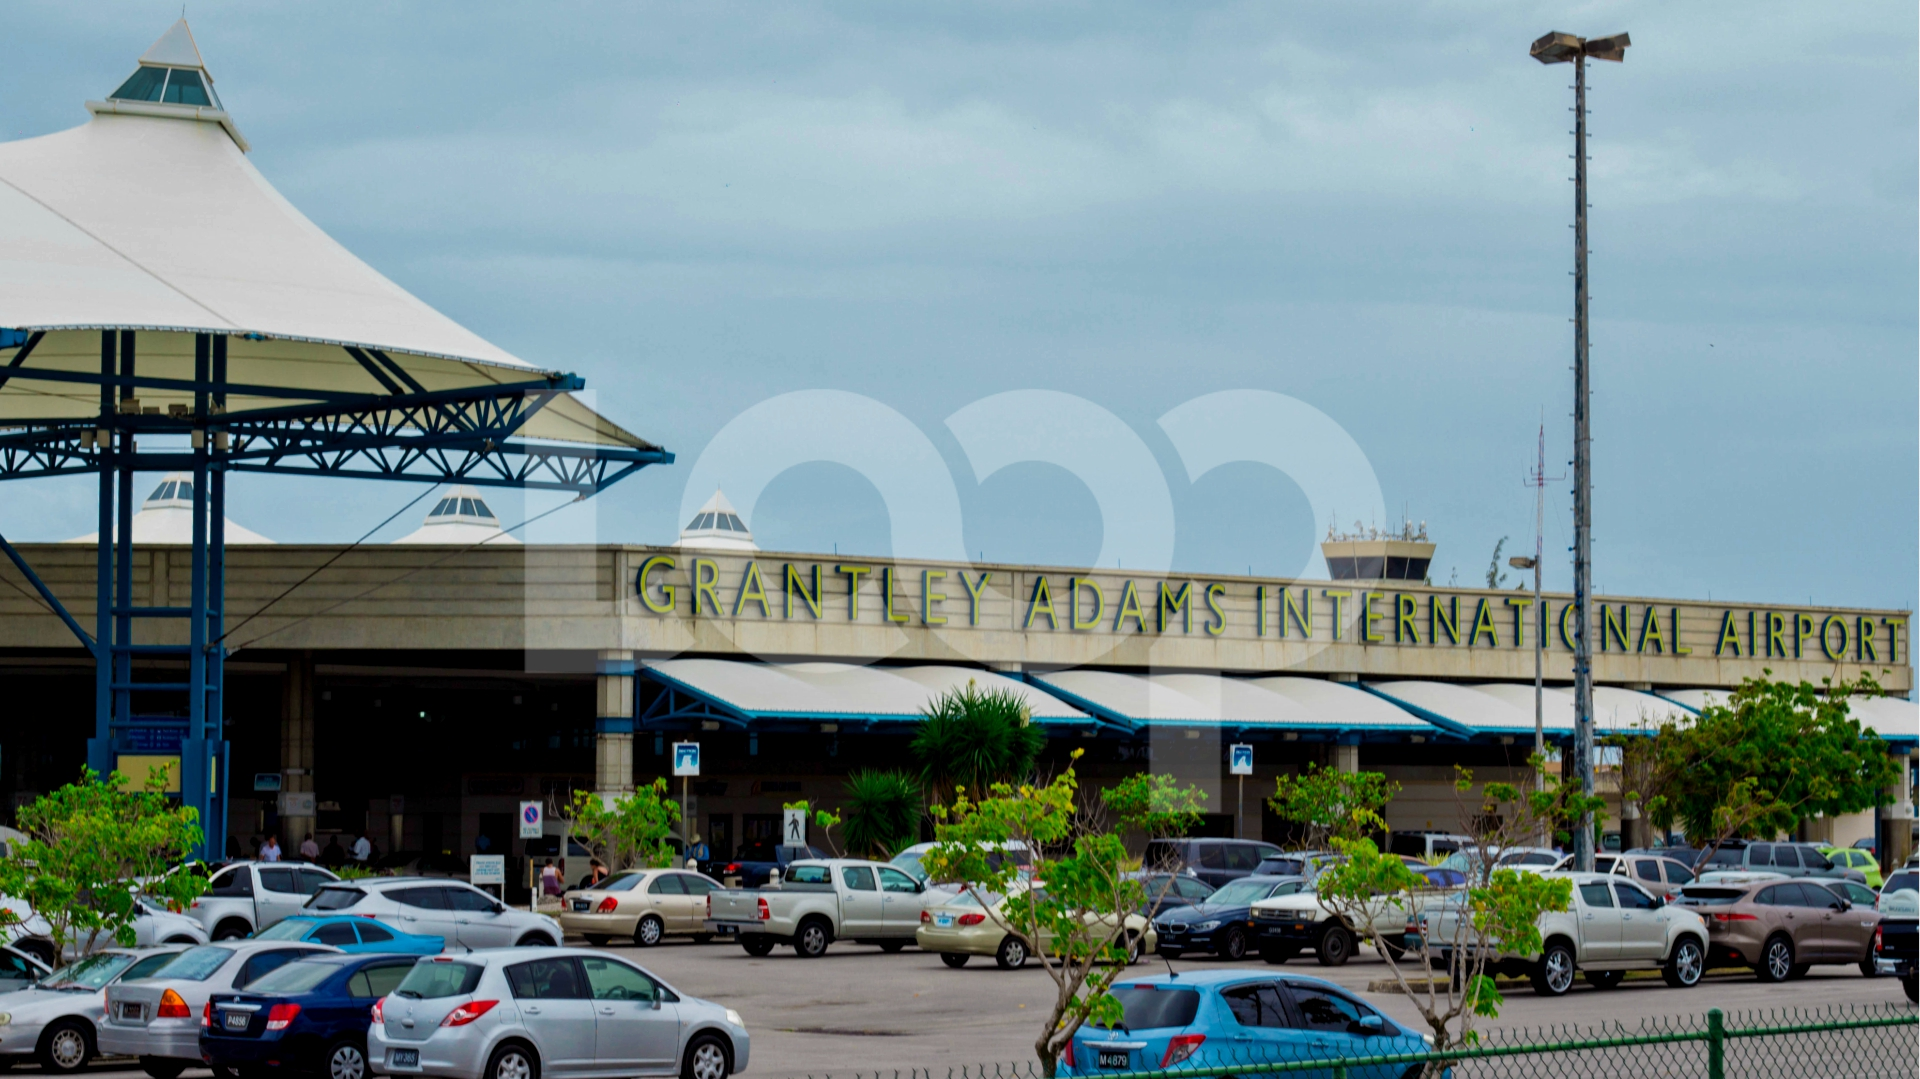 Grantley Adams International Airport.